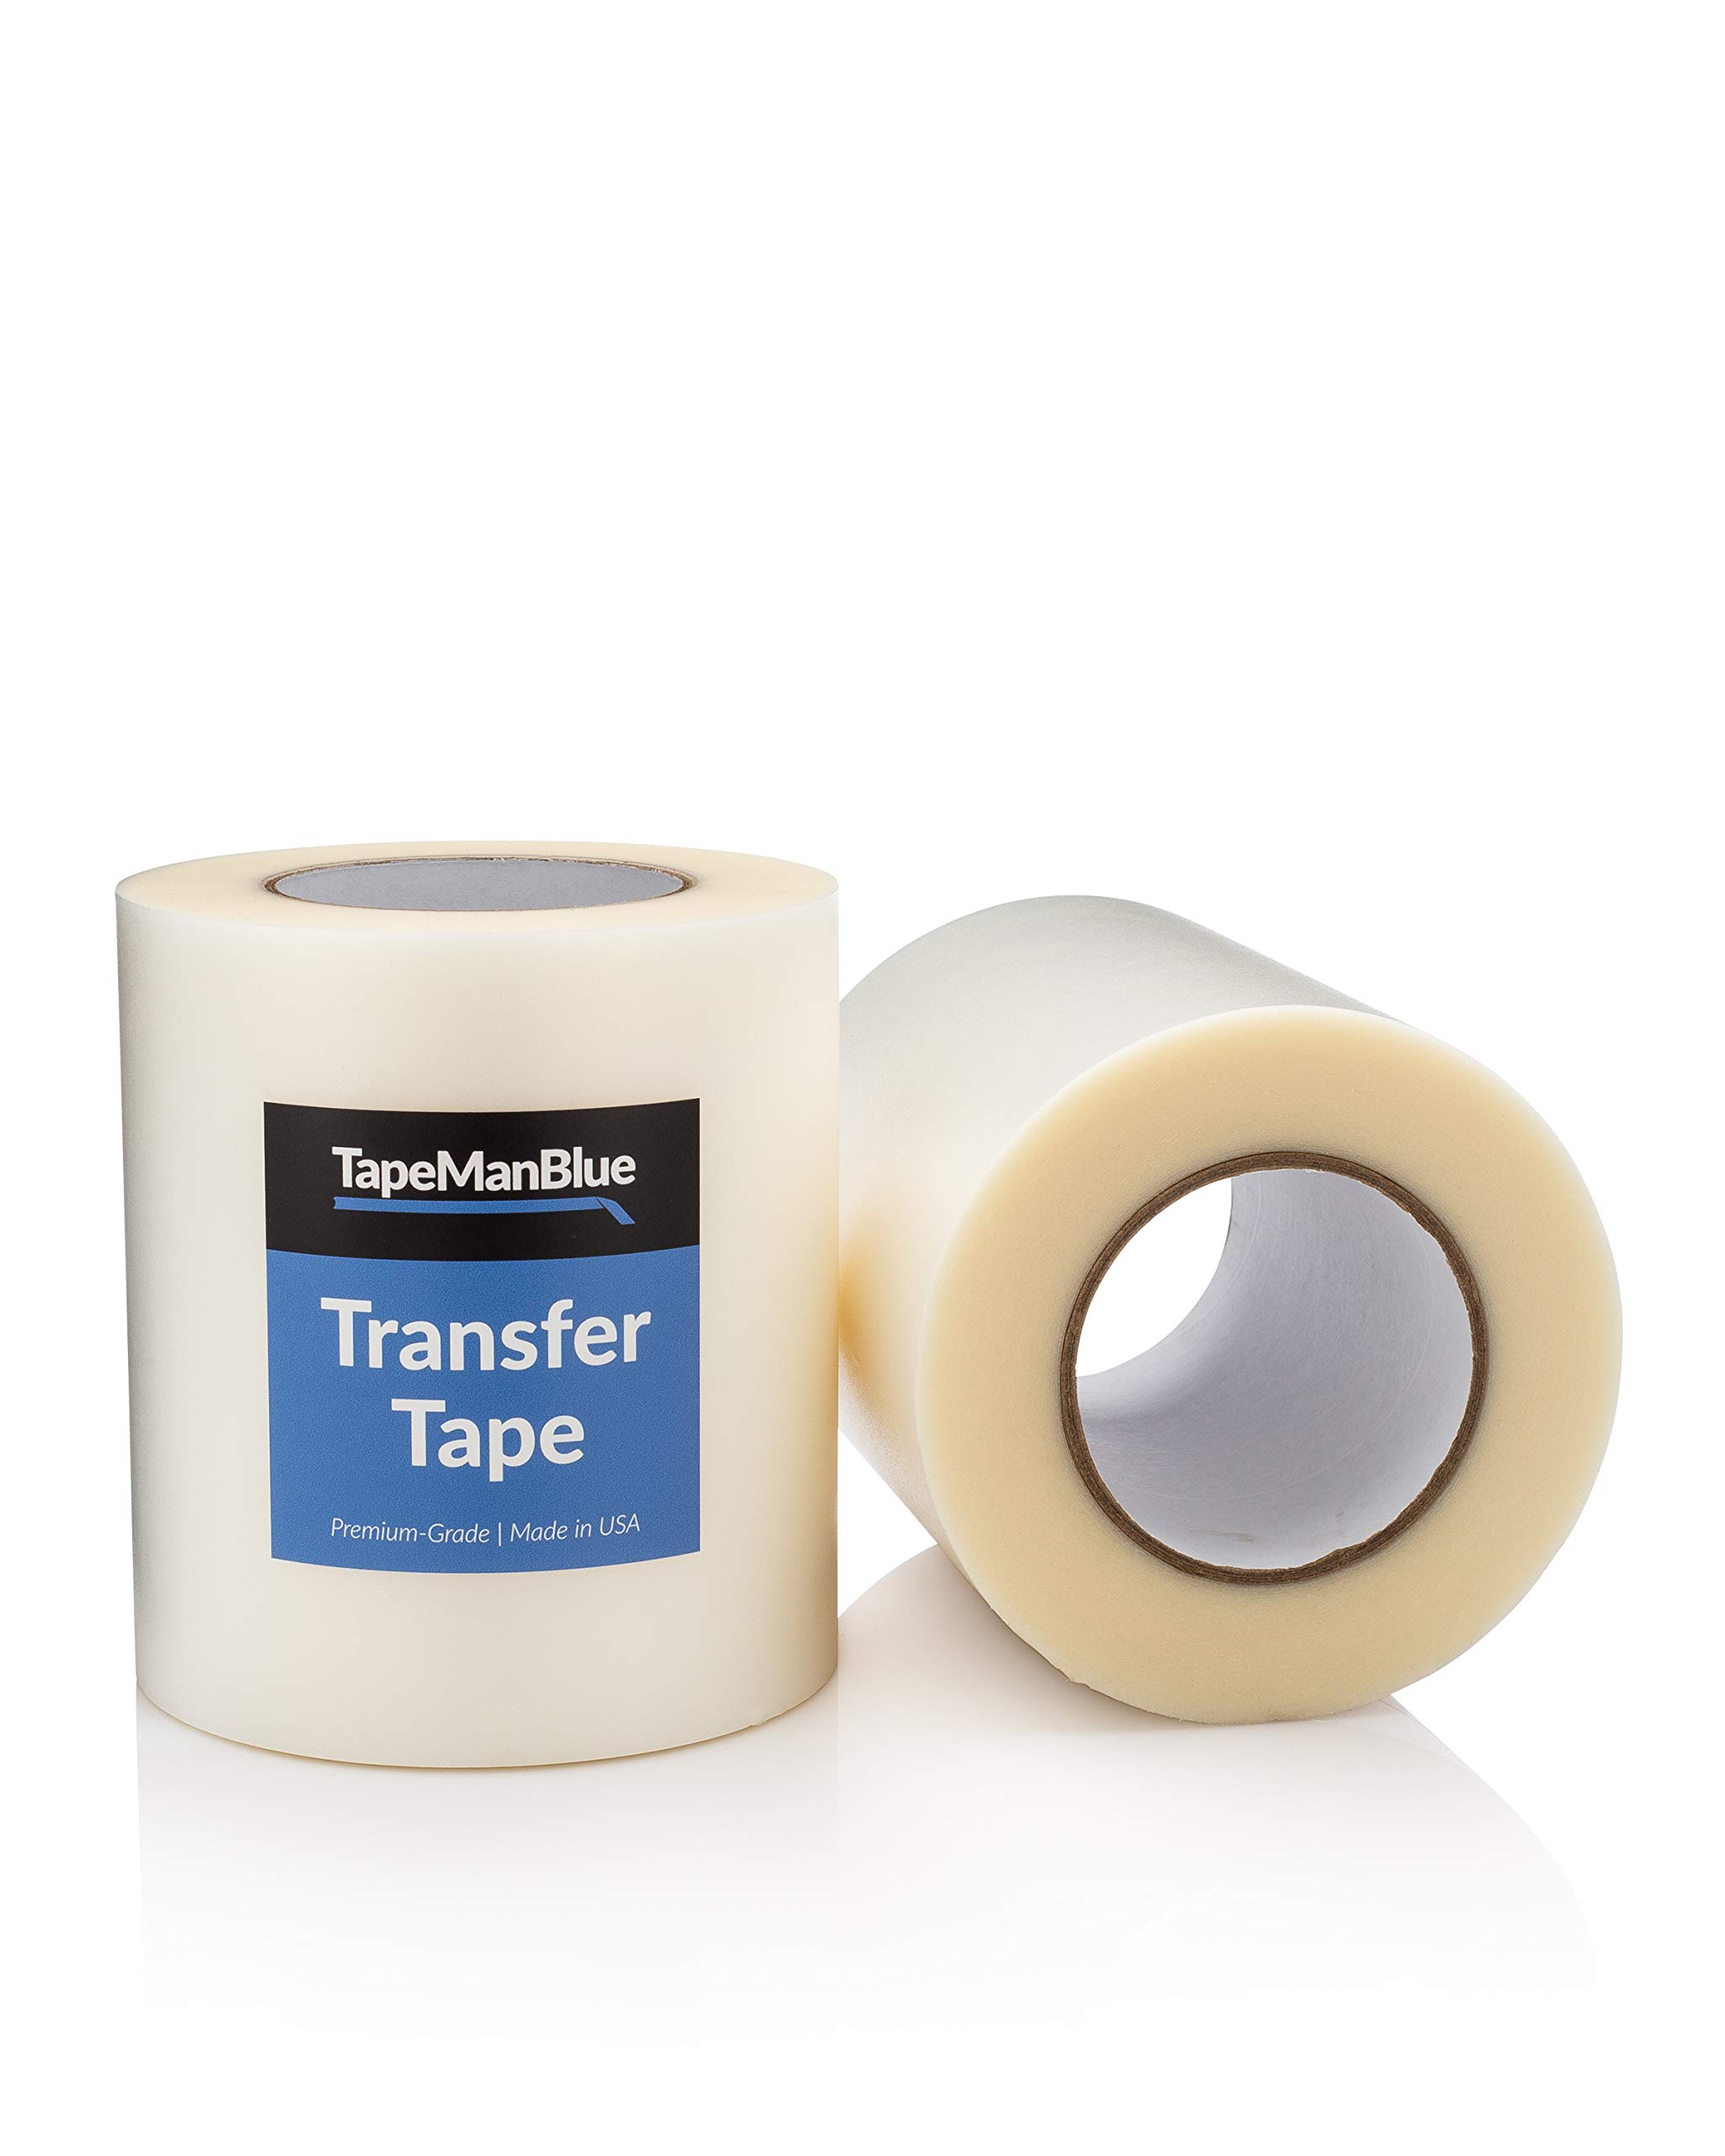 Vinyl Transfer Tape, 6 inch x 300 feet, Clear High Tack Film for Craft Die Cutters by TapeManBlue